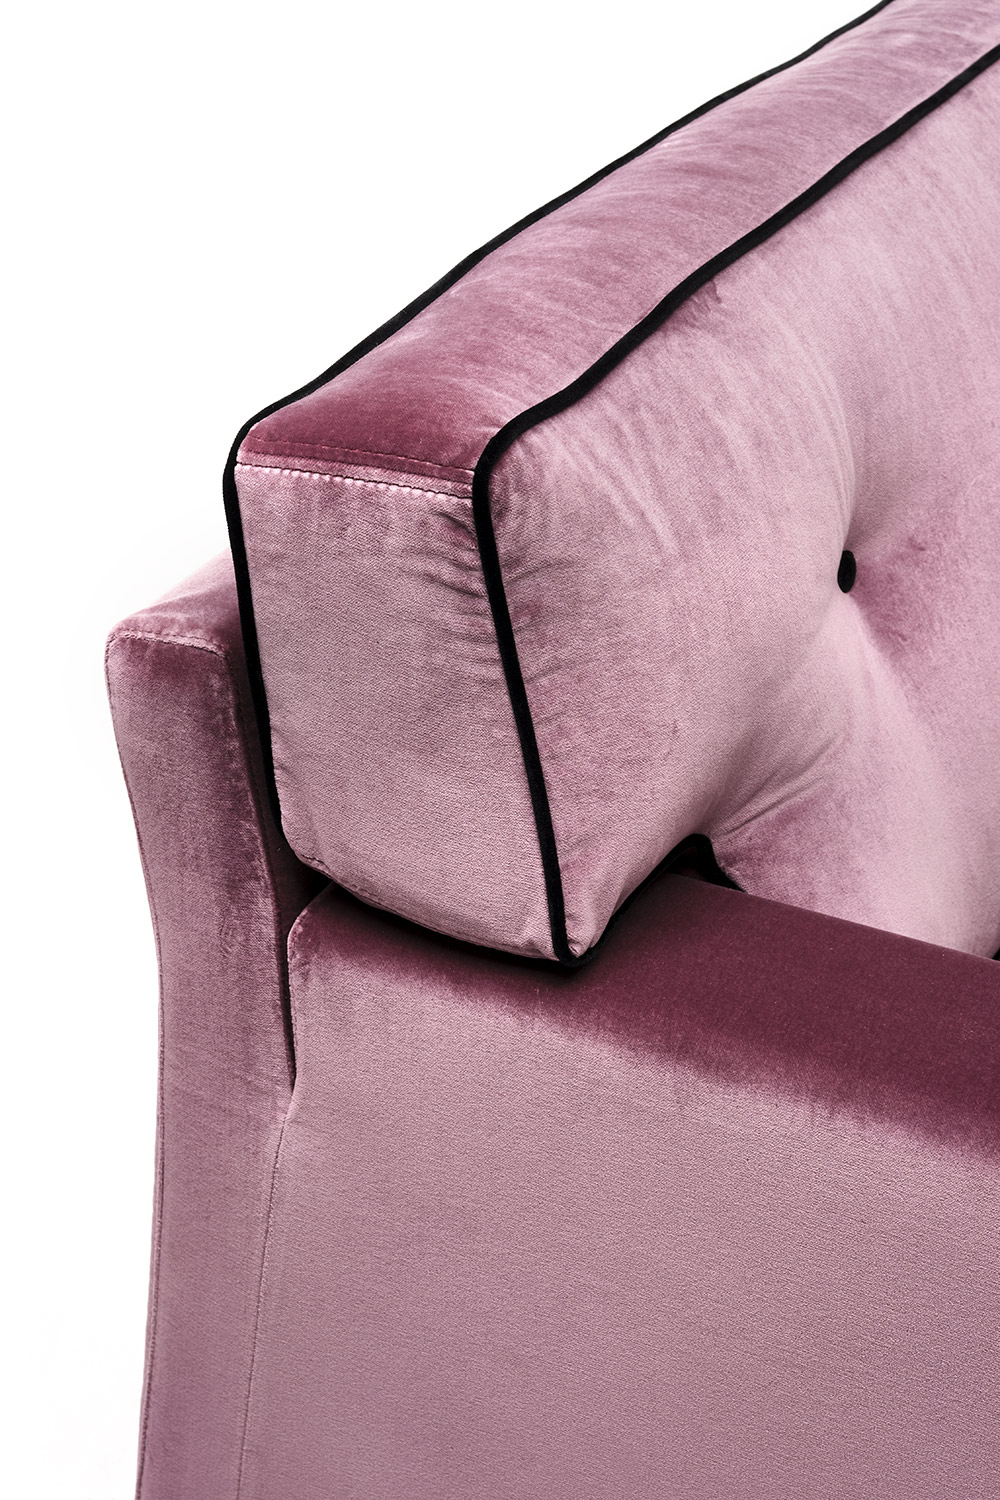 Mussi Roma sofa side detail